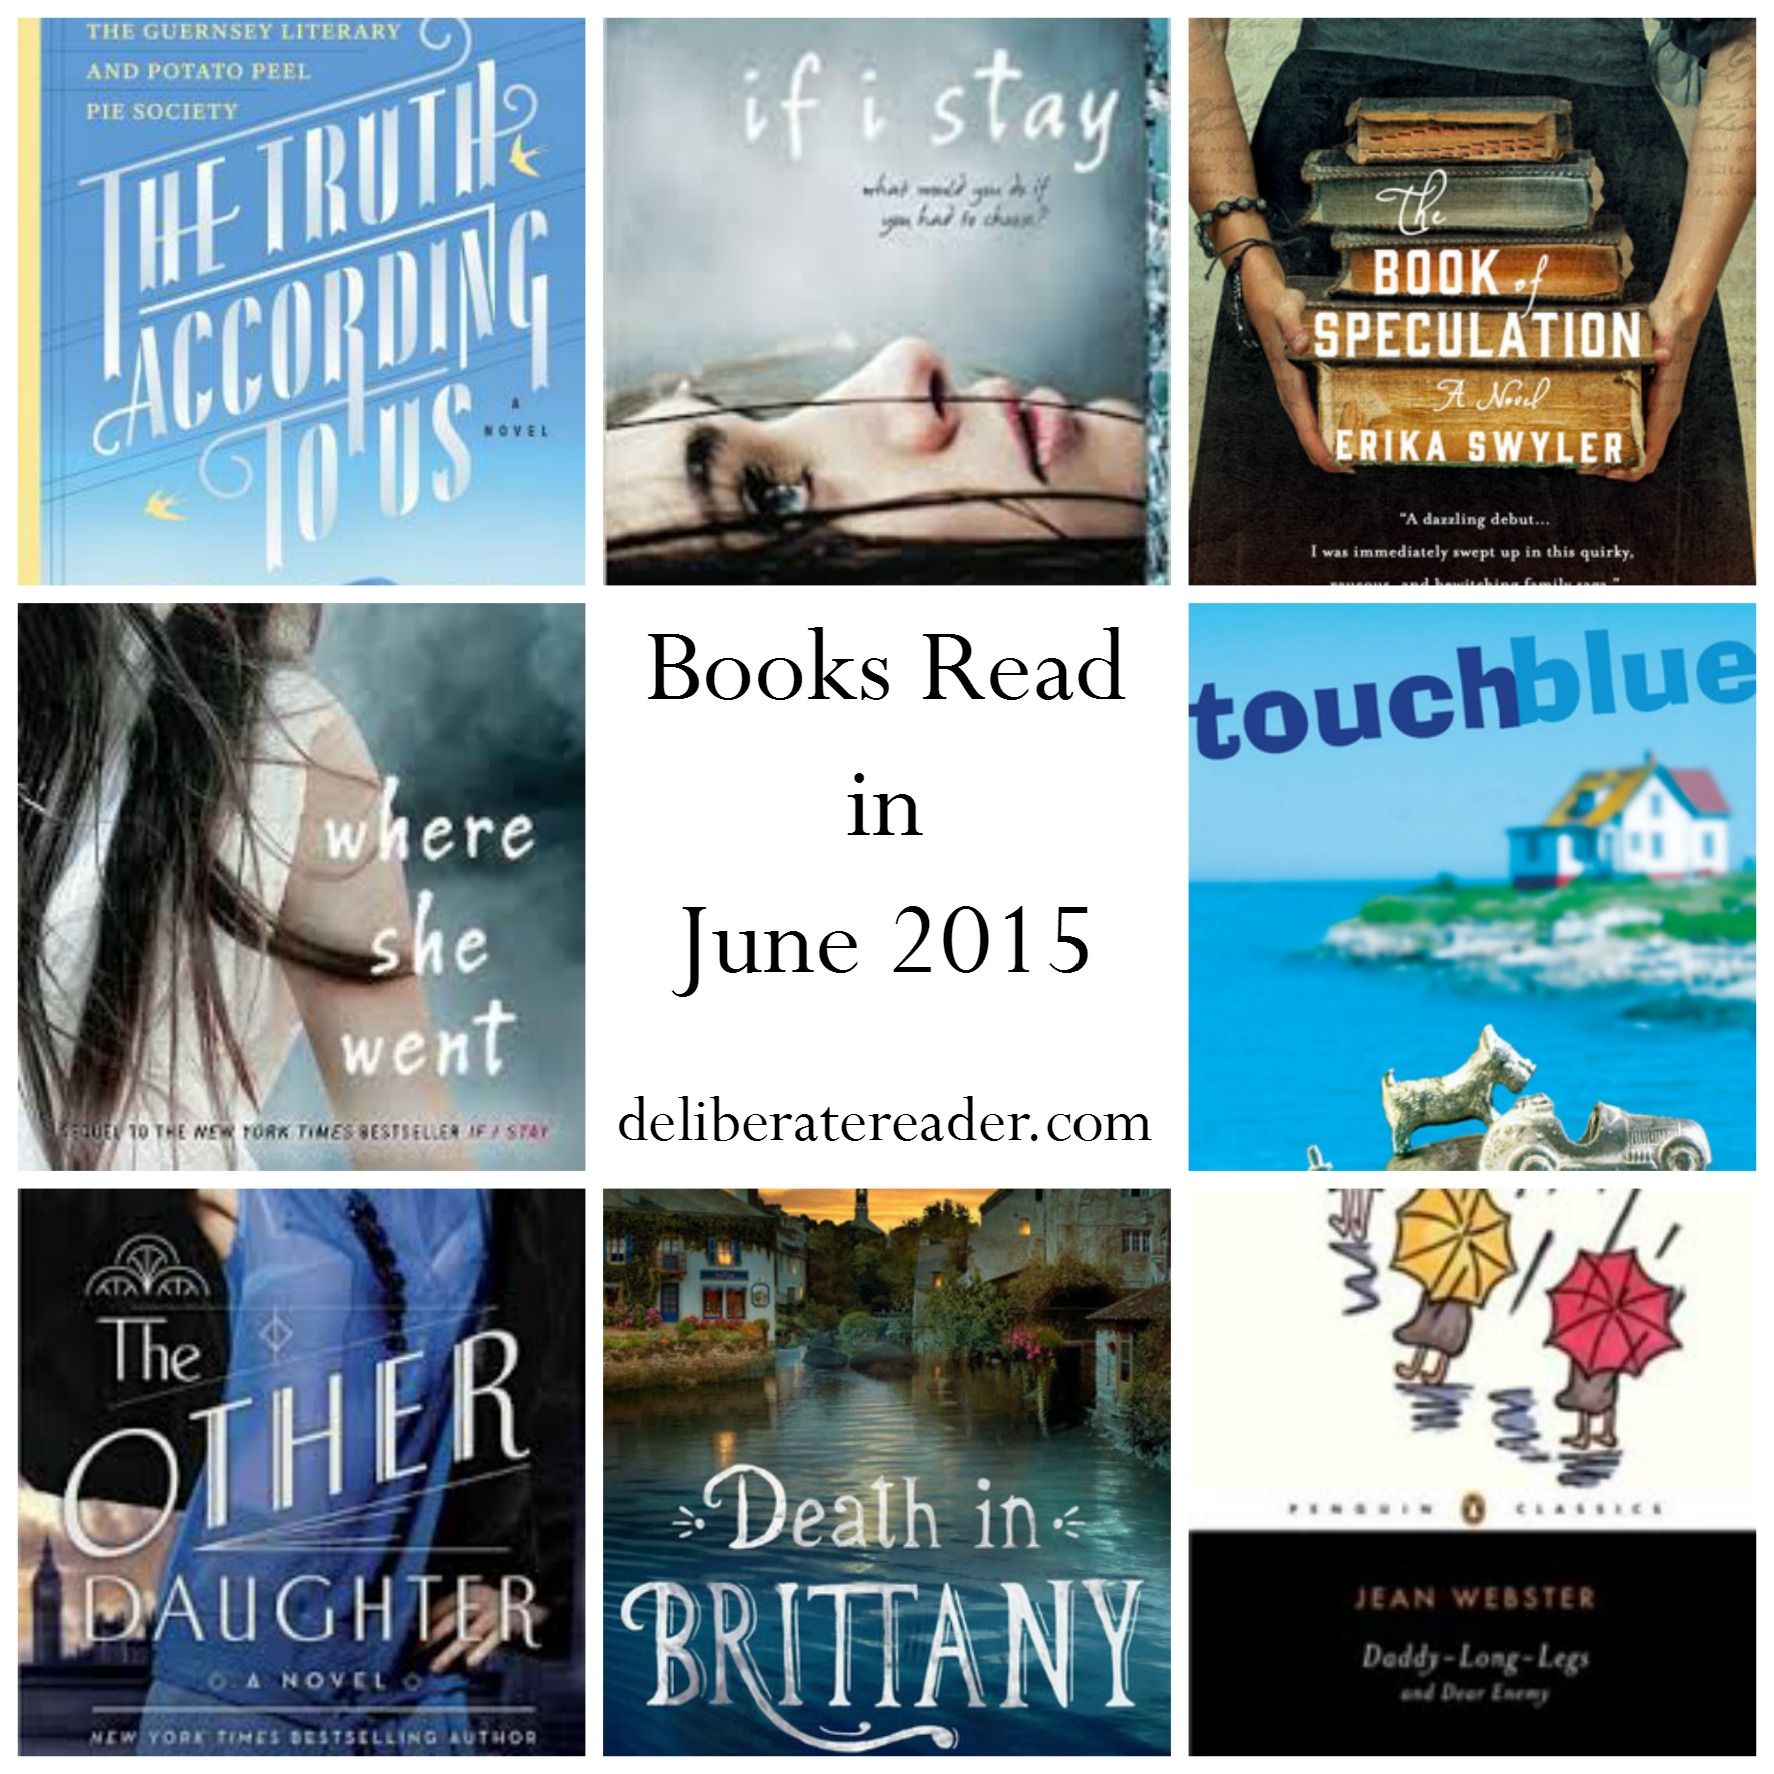 Books Read in June 2015